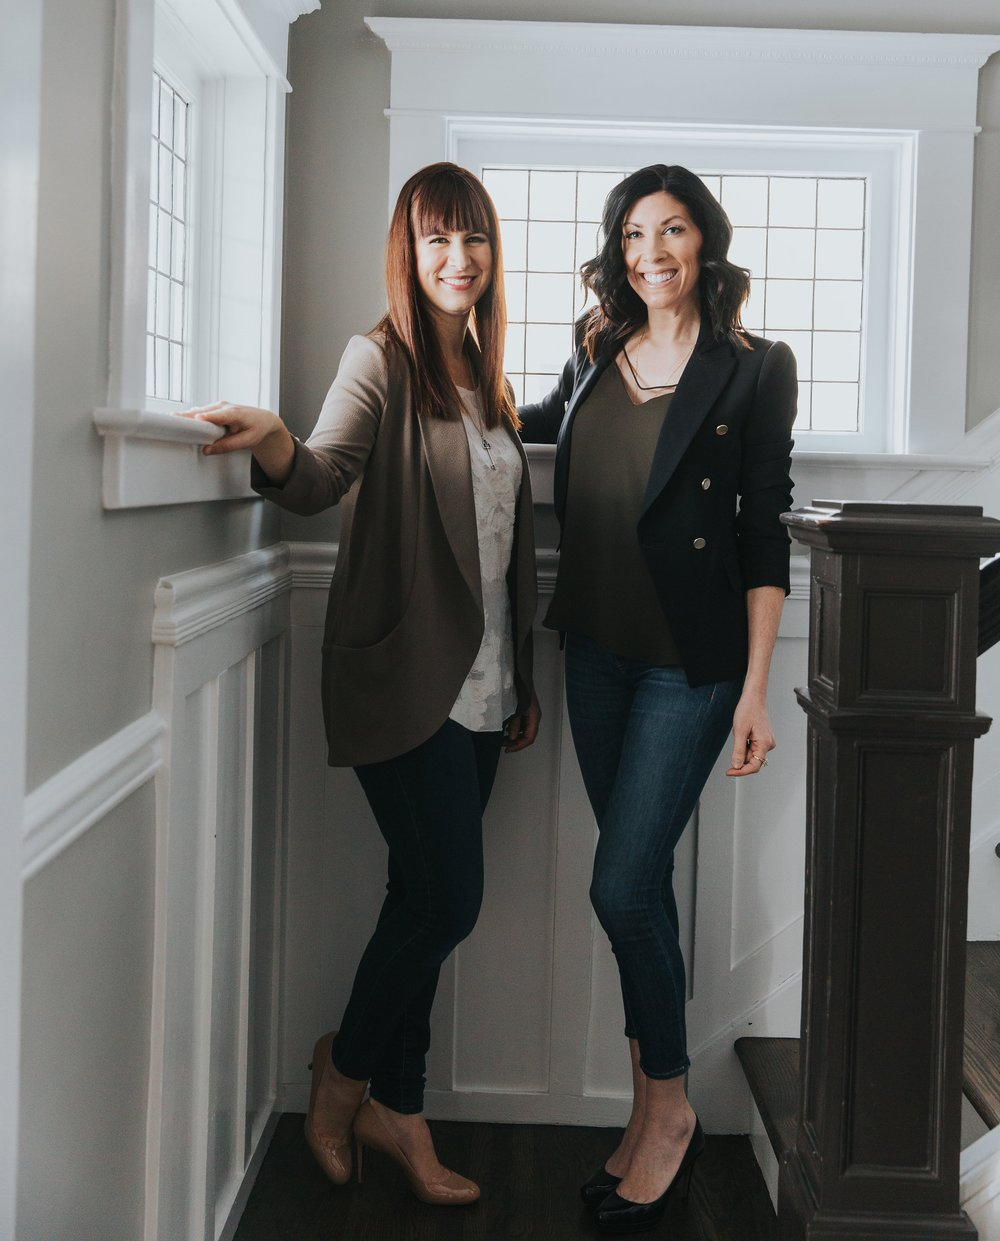 Krista & Lisa, Co-Founders